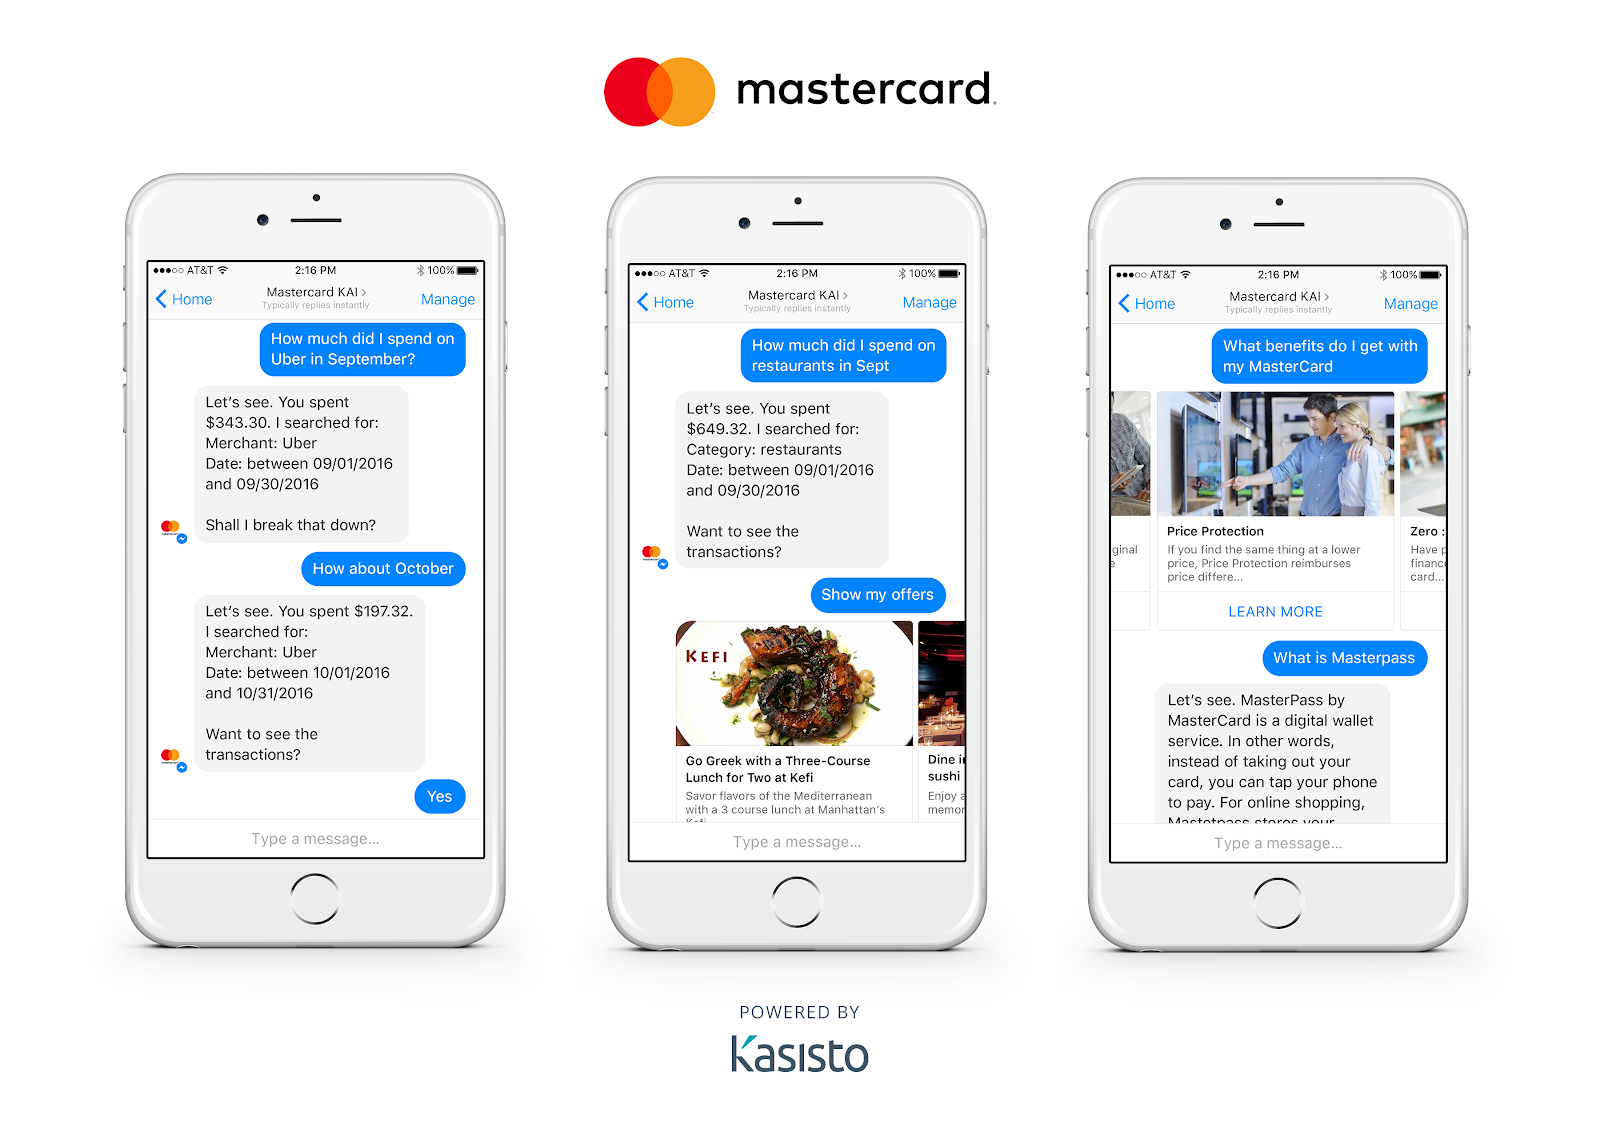 Mastercard's chatbot helps you manage your bank account quickly.